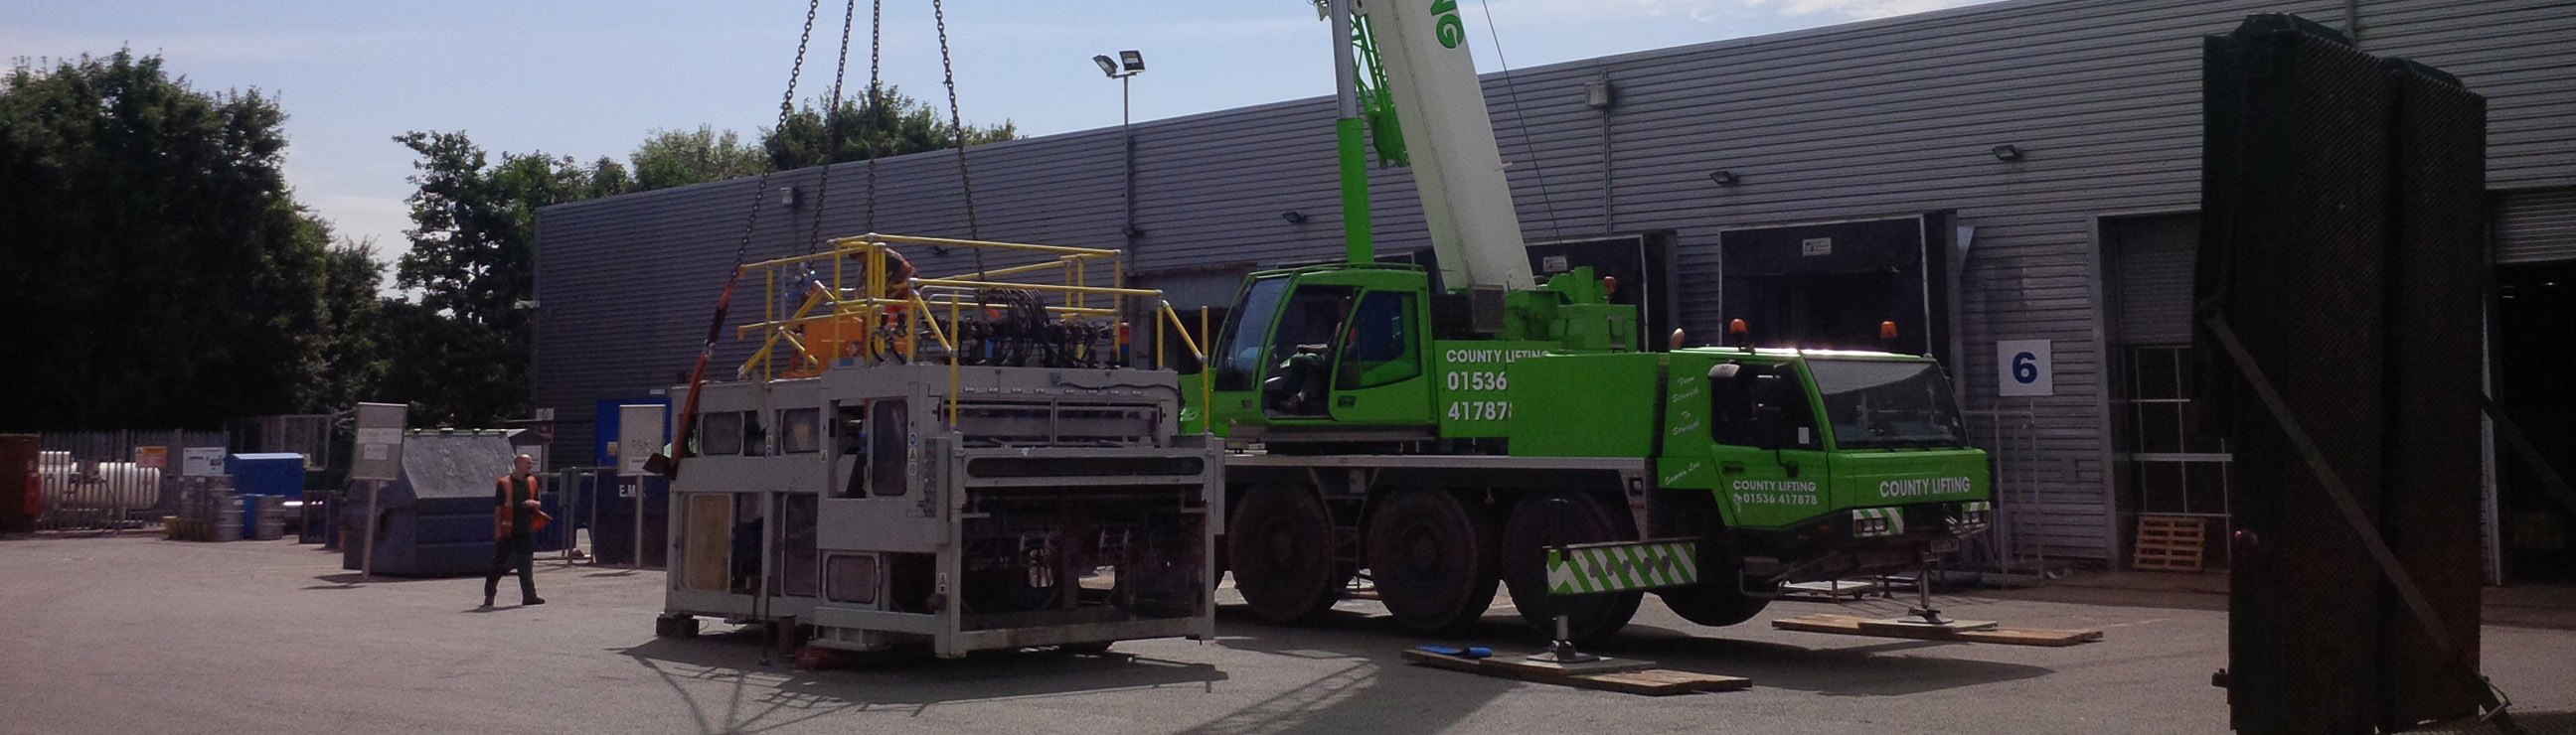 65t Tadano Faun Mobile Crane | County Lifting